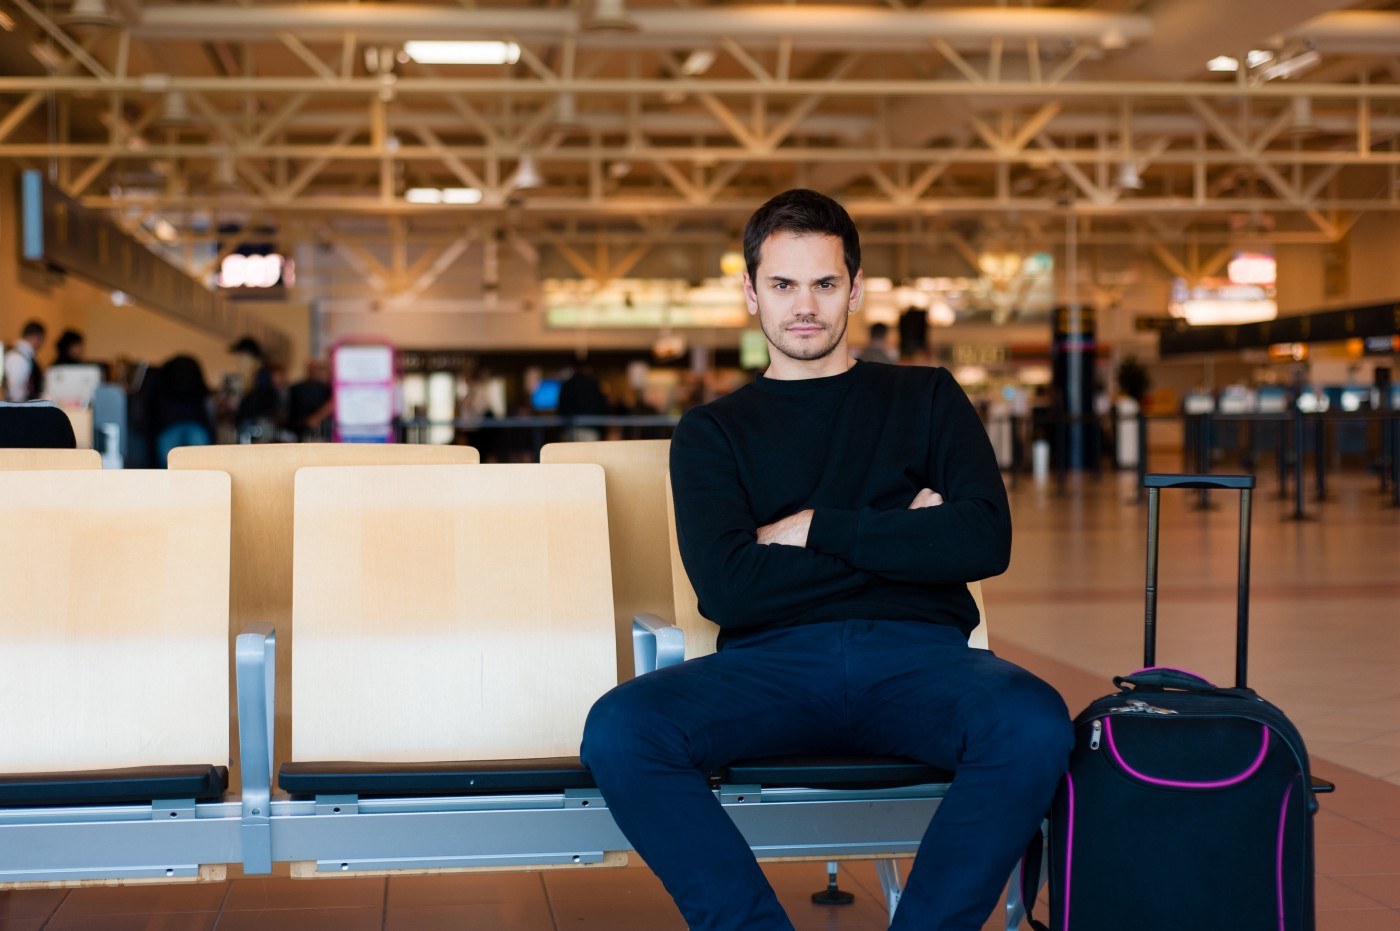 Portrait of handsome smiling man in casual wear sitting in the hall of the airport terminal, while waiting for his flight.